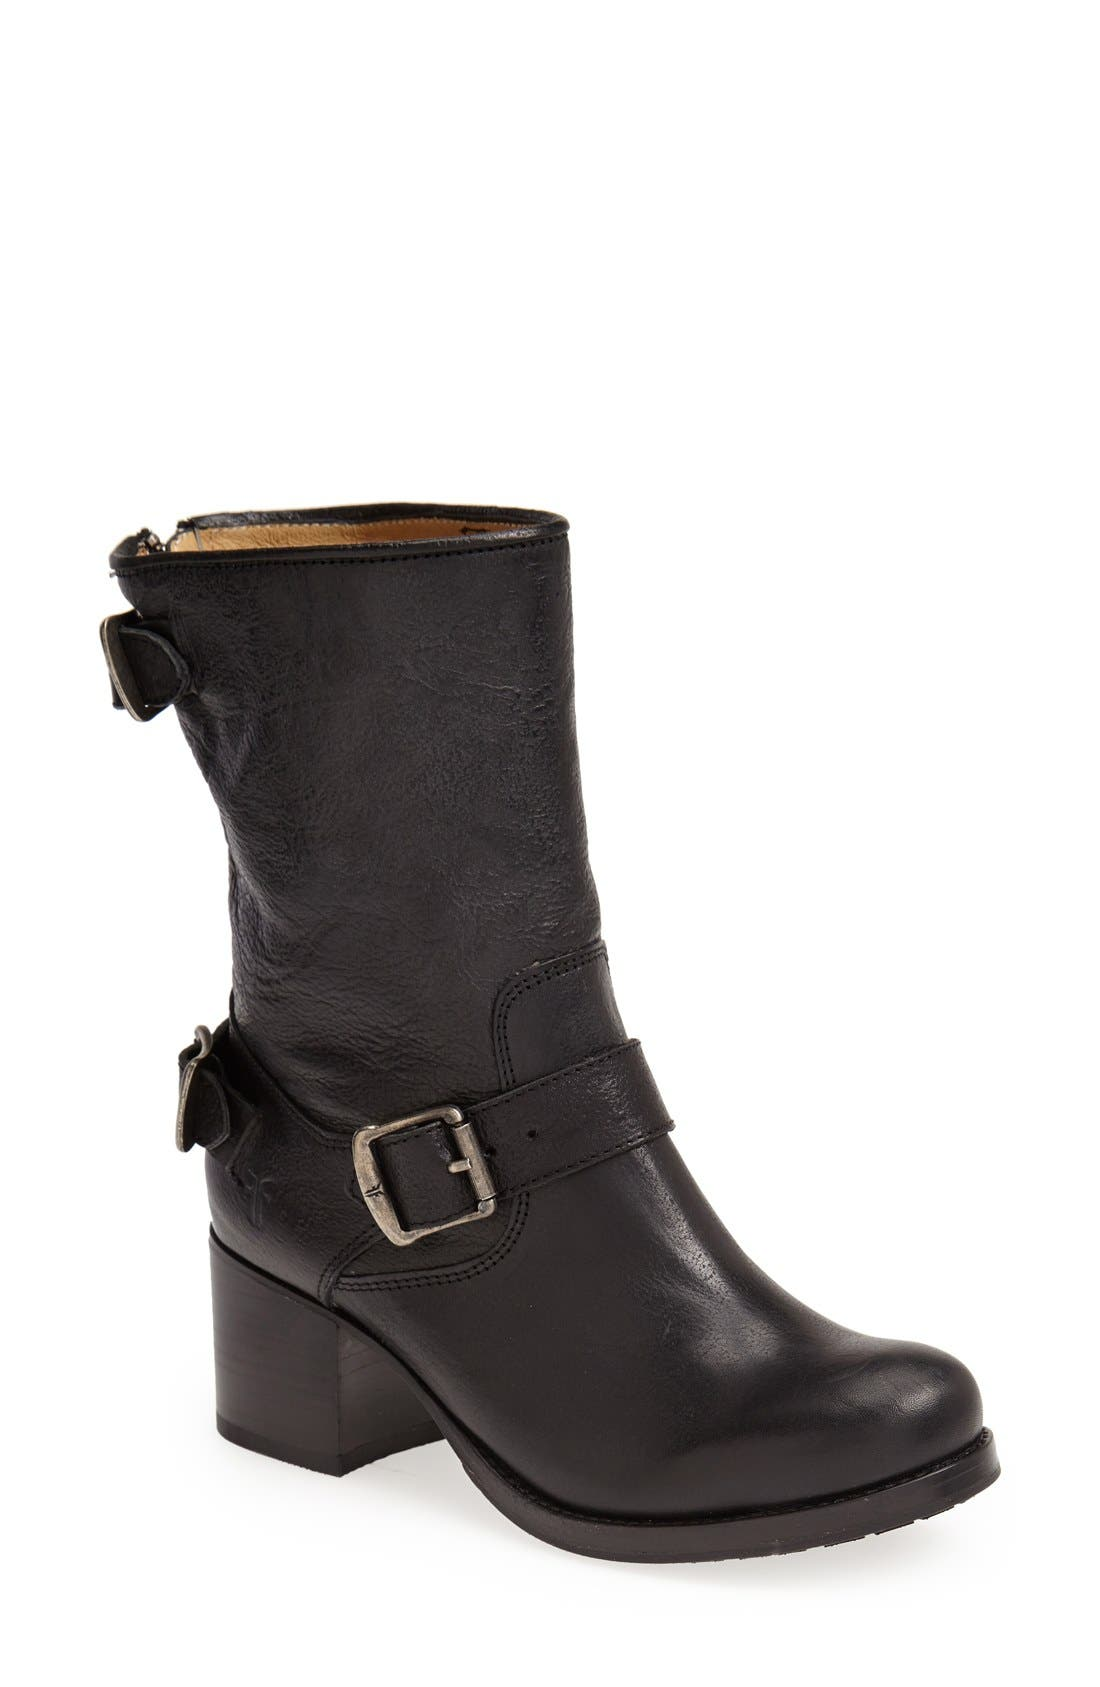 Alternate Image 1 Selected - Frye 'Vera' Short Boot (Women)